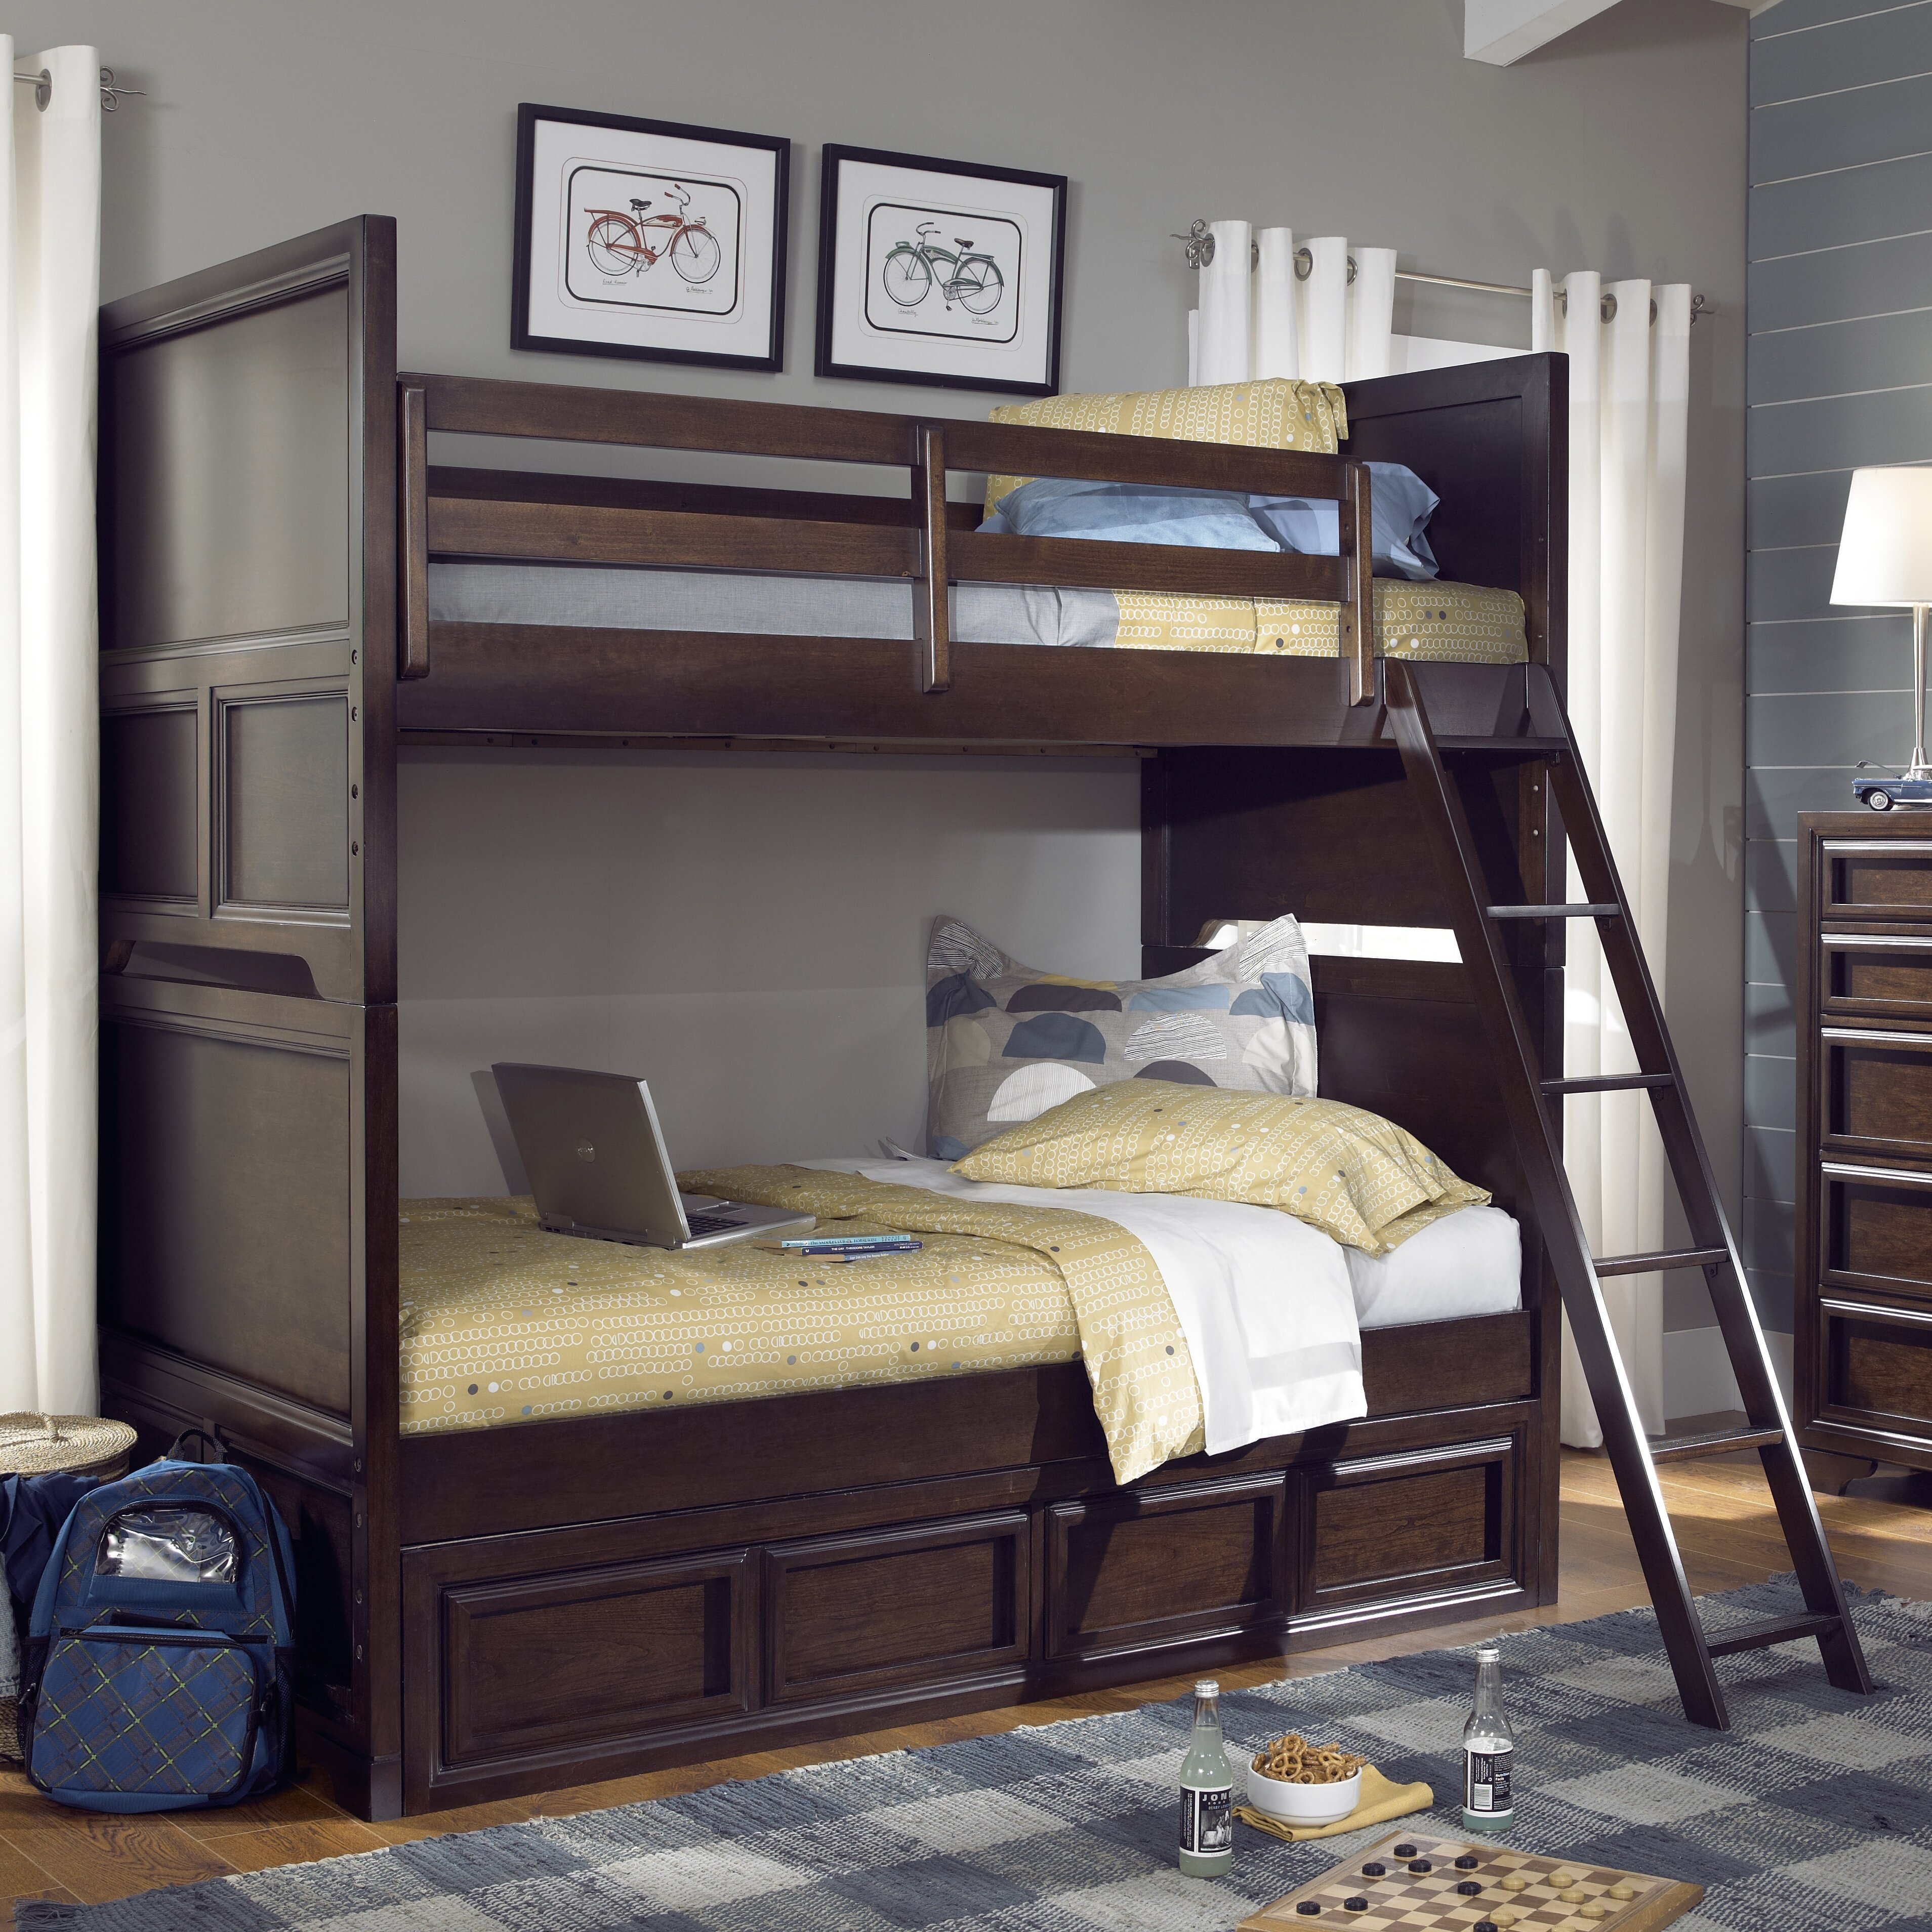 twin bed with storage underneath lc benchmark standard bunk bed with 20005